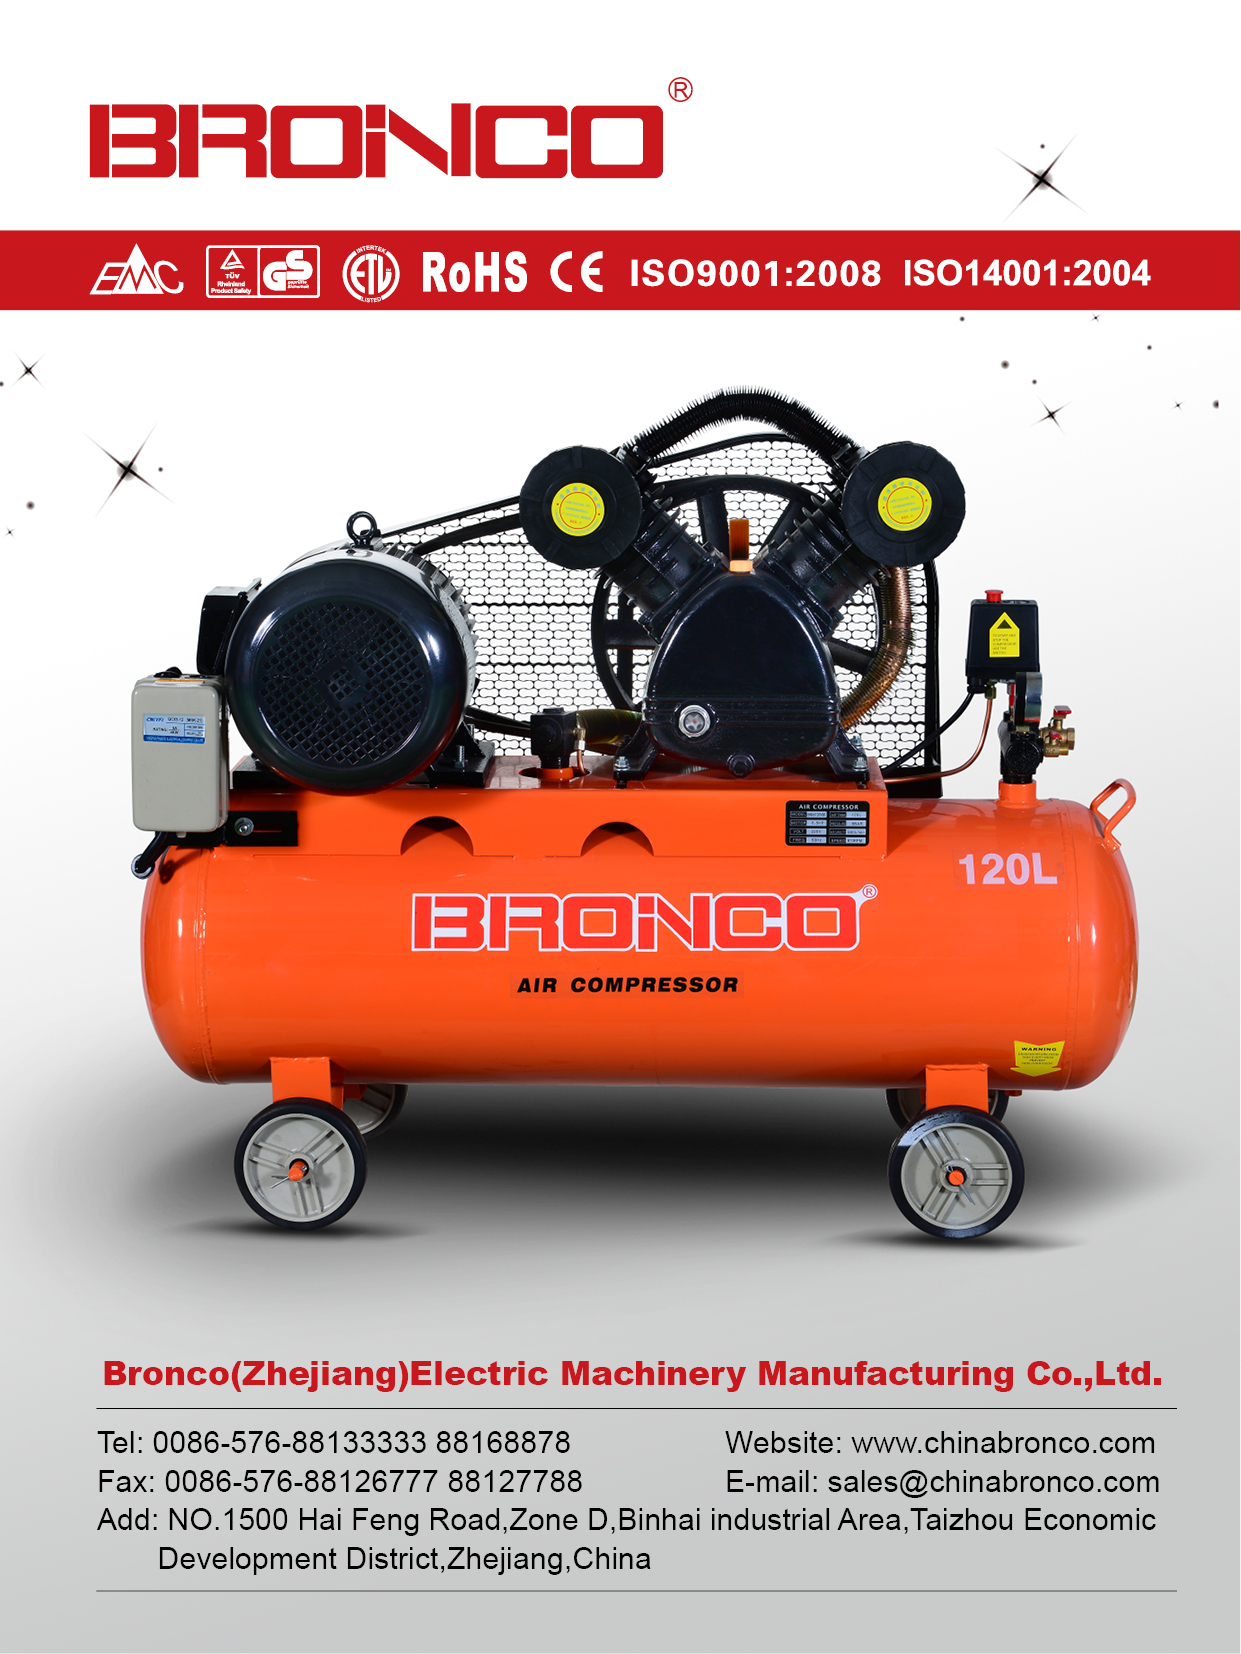 Bronco-Catalogue of air compressor